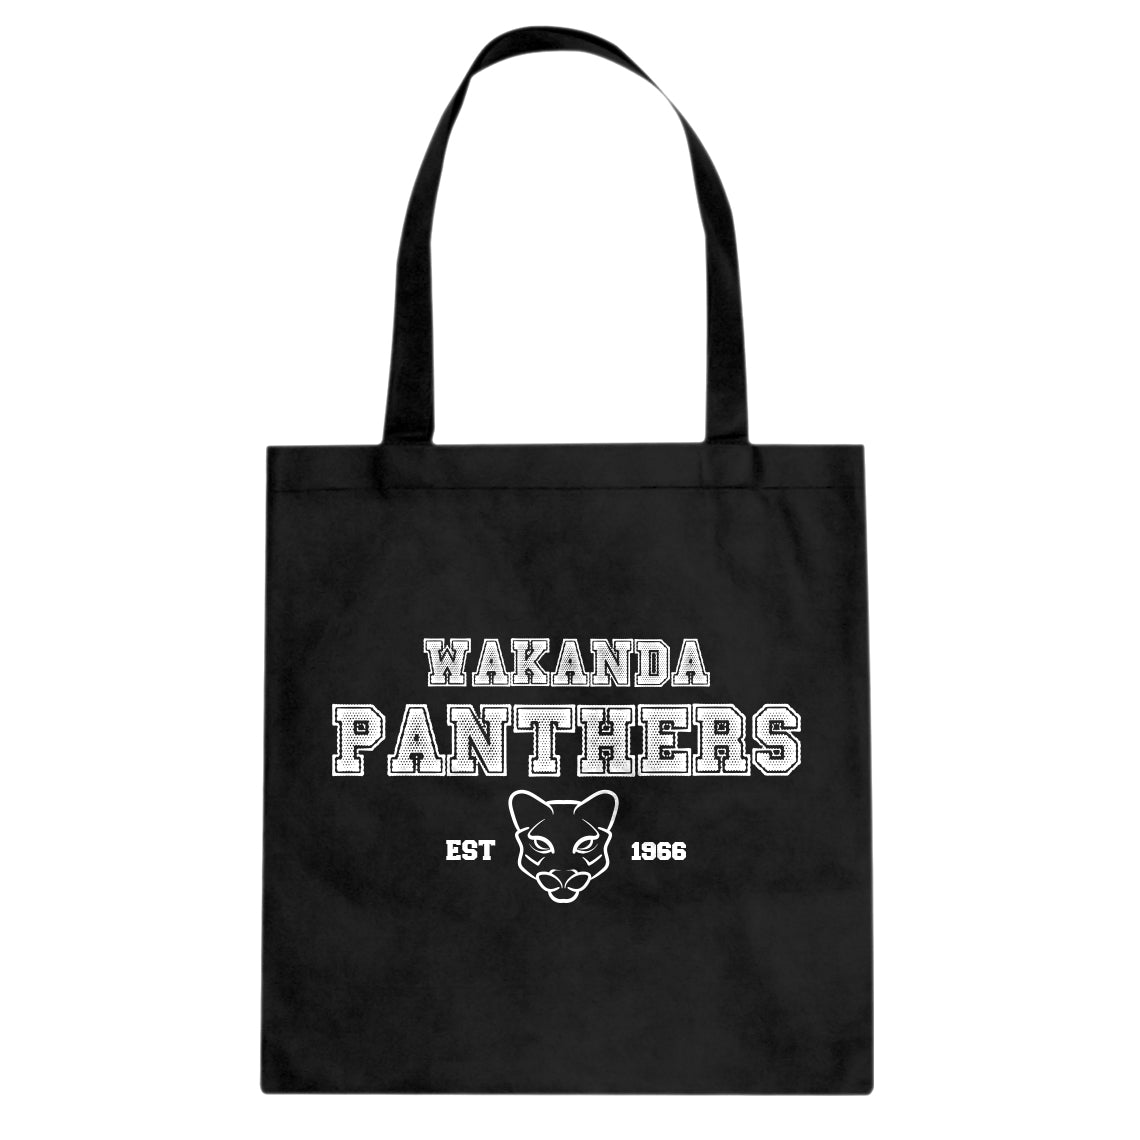 Tote Wakanda Panthers 1966 Canvas Tote Bag